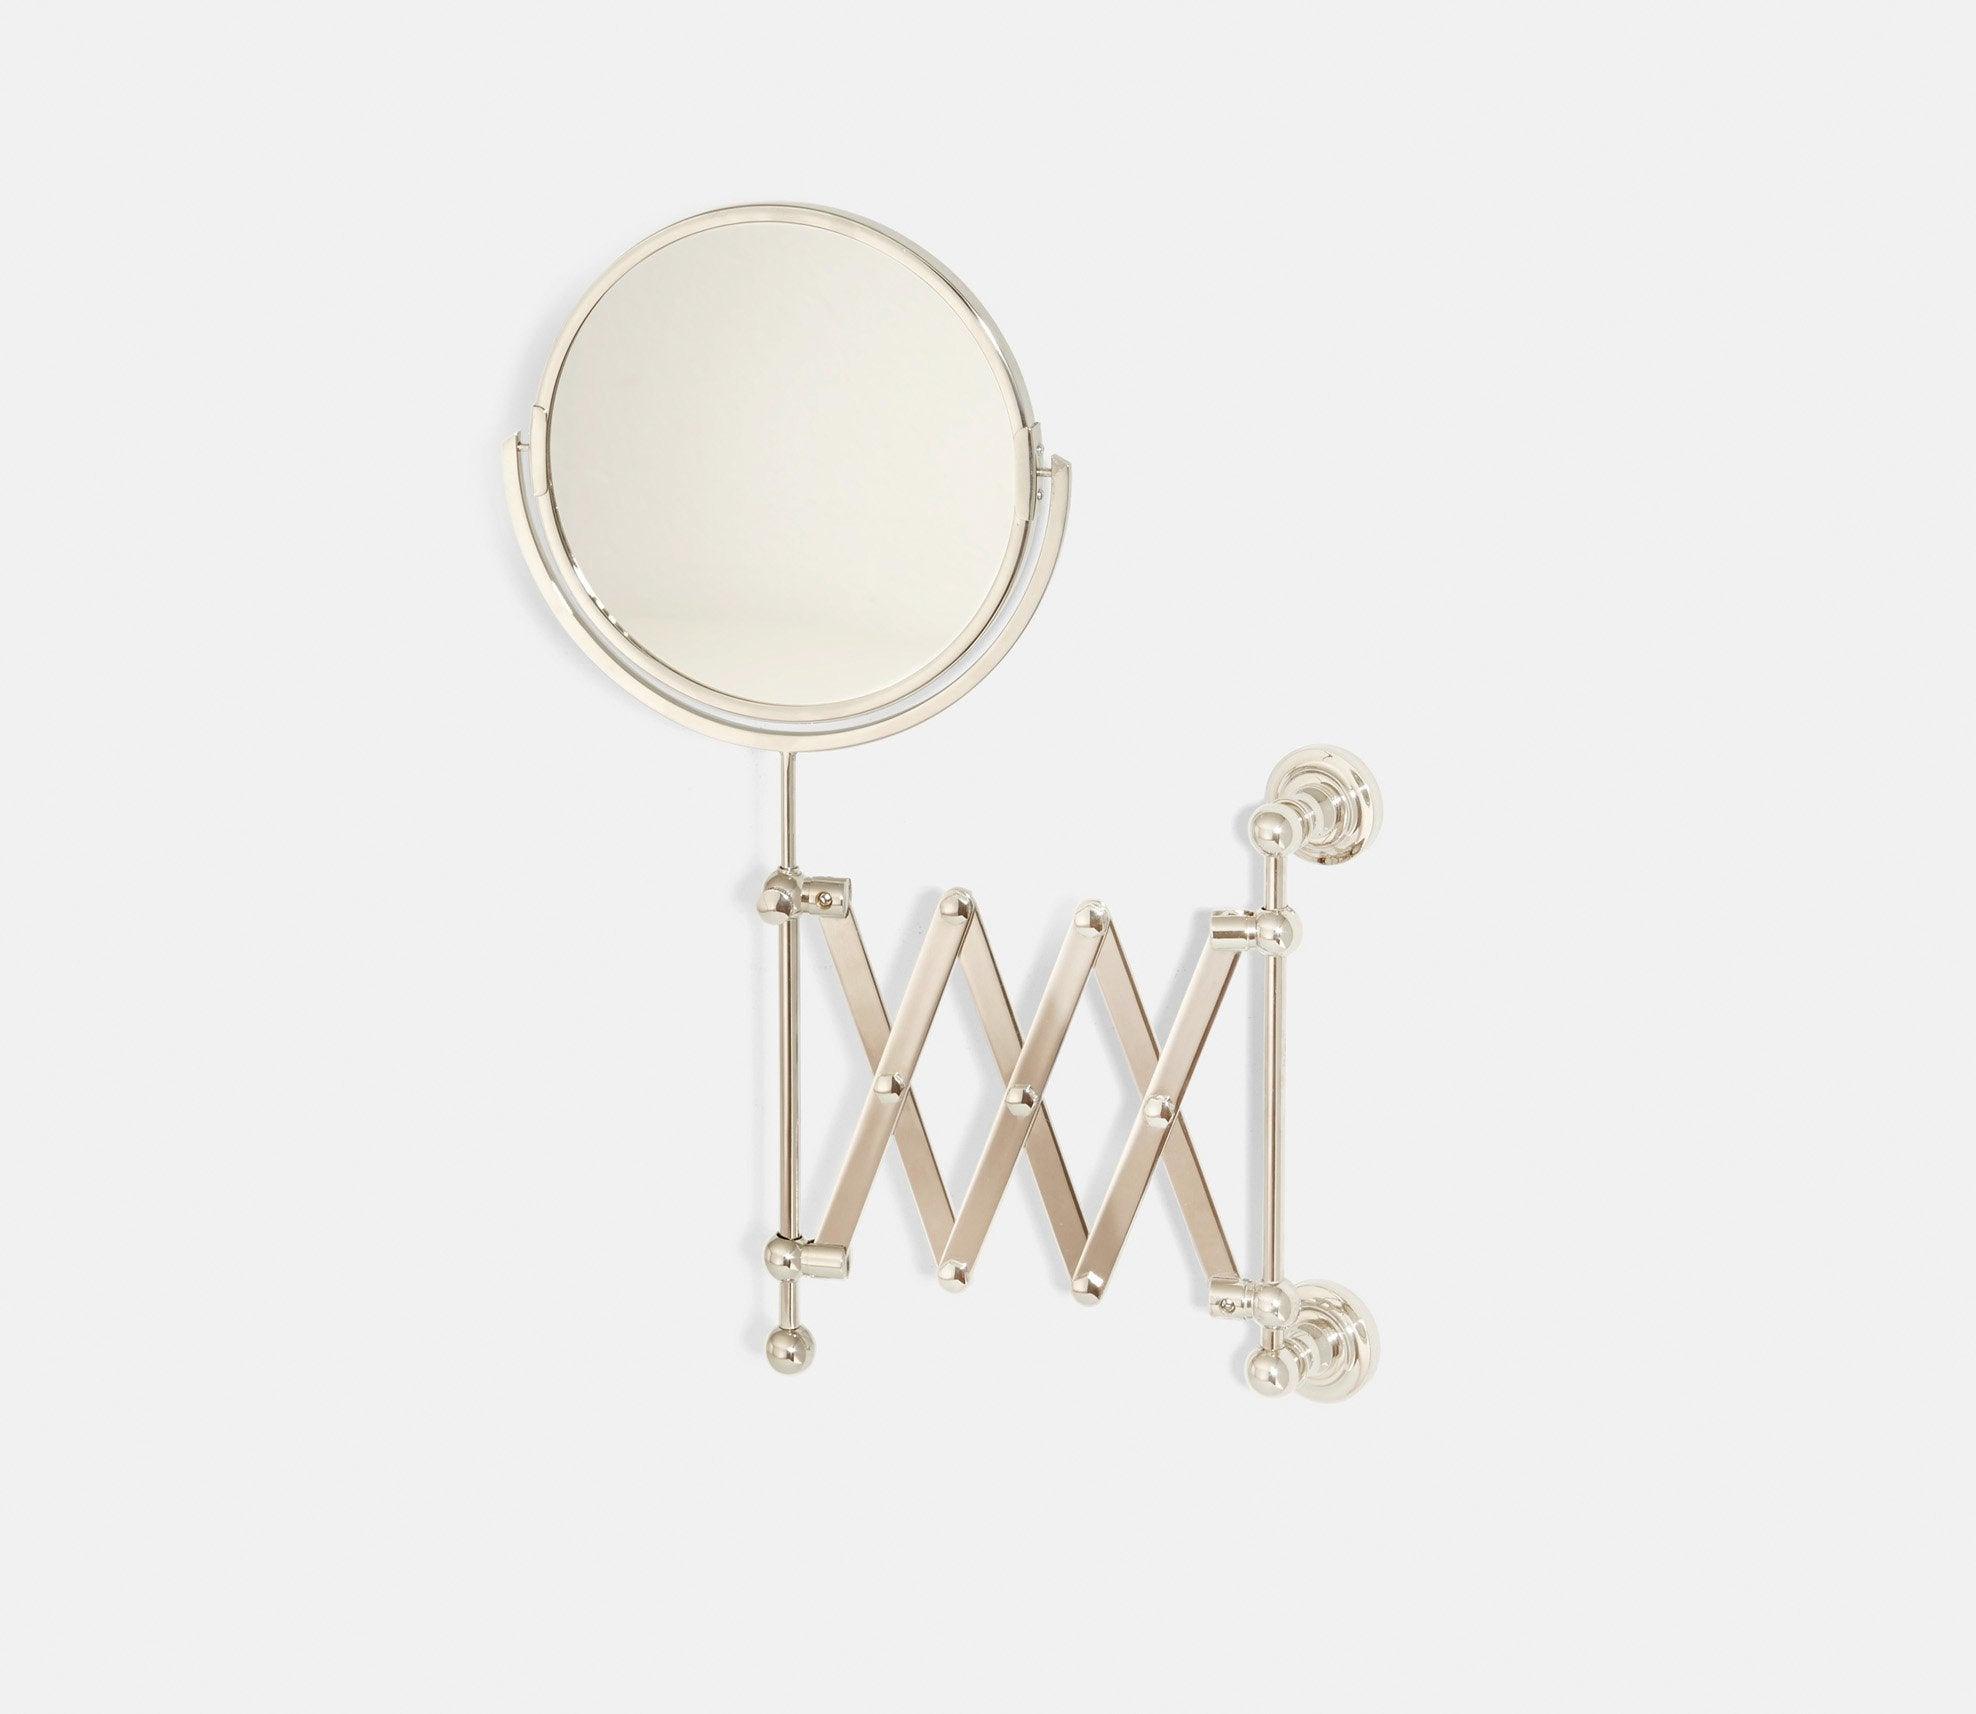 Hanbury Extending Wall Mirror Product Image 1